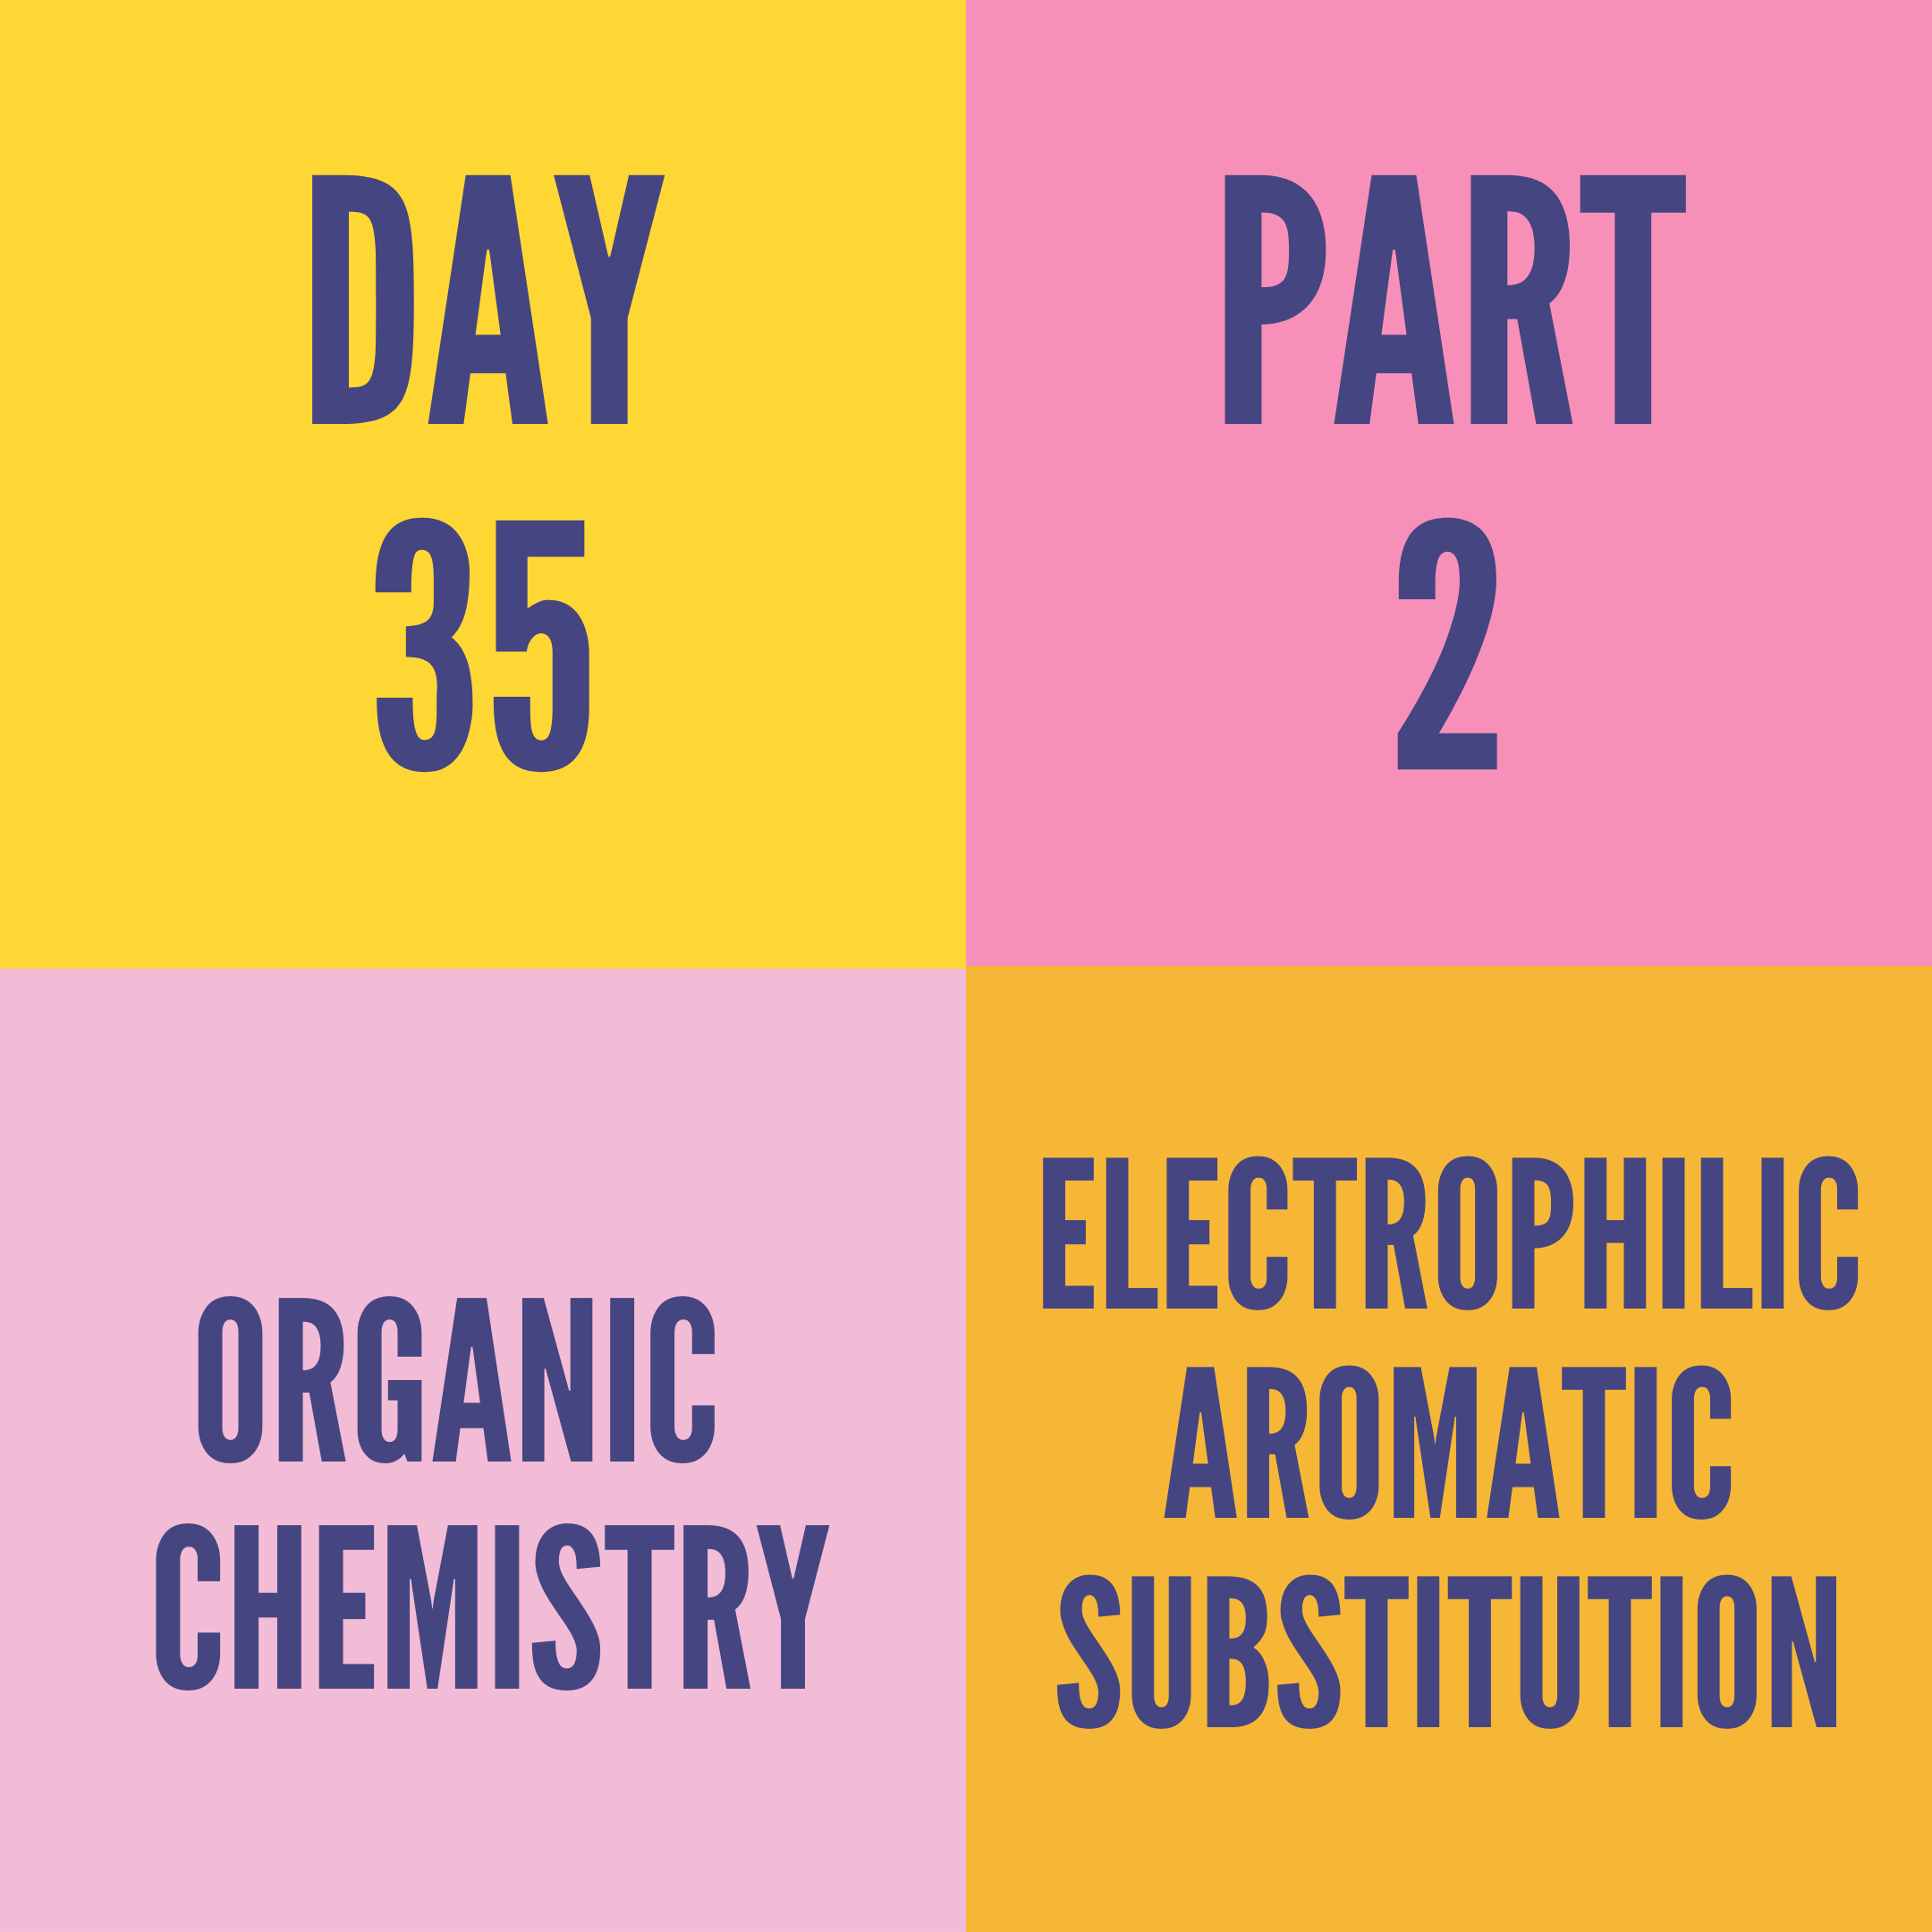 DAY-35 PART-2 ELECTROPHILIC AROMATIC SUBSTITUTION